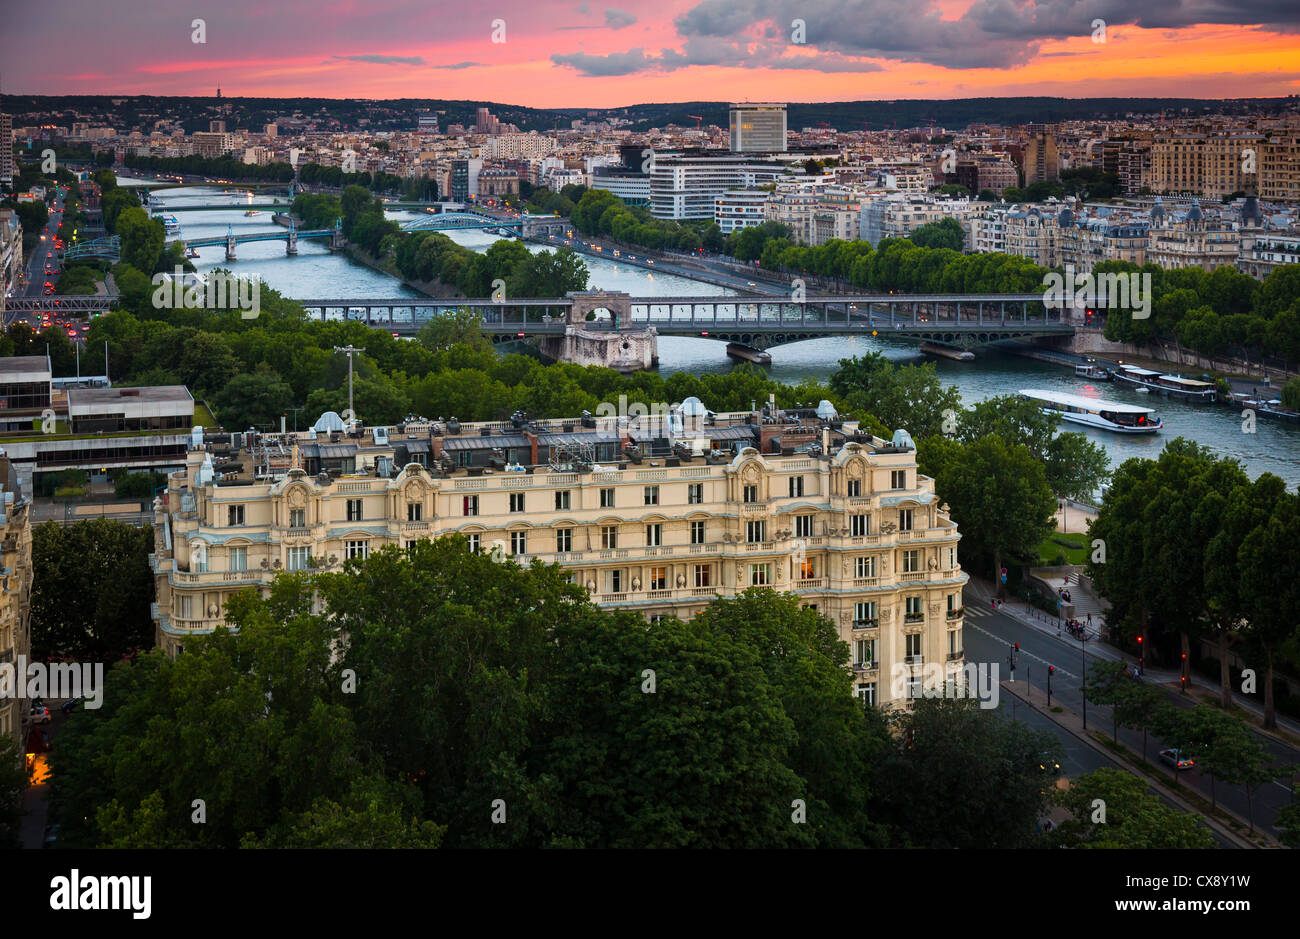 The river Seine and some of the many bridges that crosses it as it snakes its way through Paris, France - Stock Image